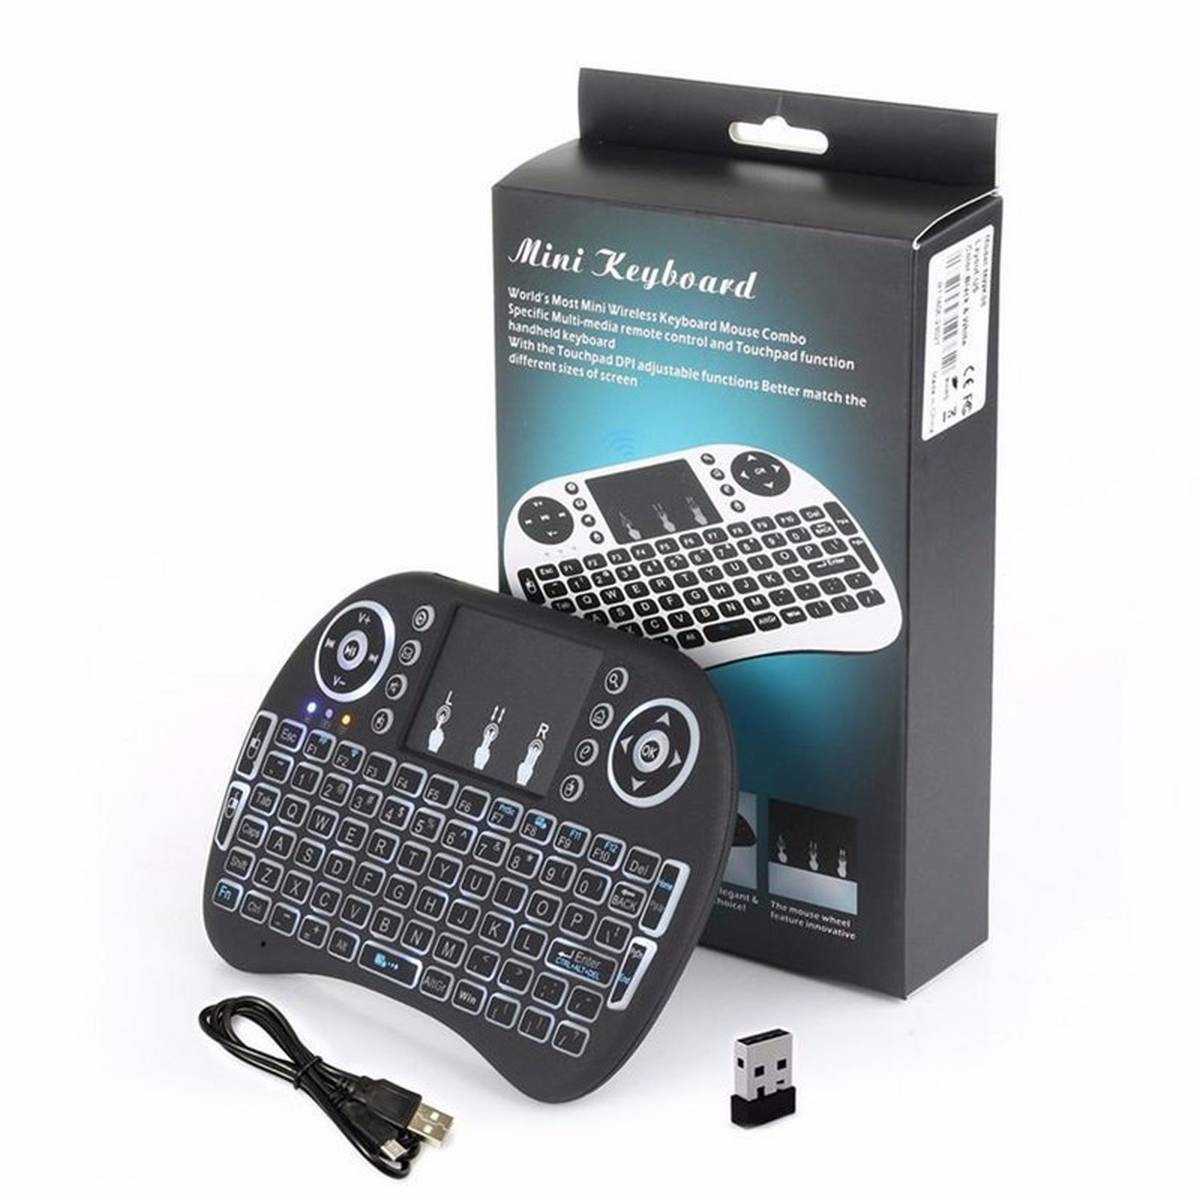 Mini Keyboard i8 with Backlight 2.4GHz Wireless Keyboard Air Mouse Touchpad for Android, pc, tv, box multipurpose